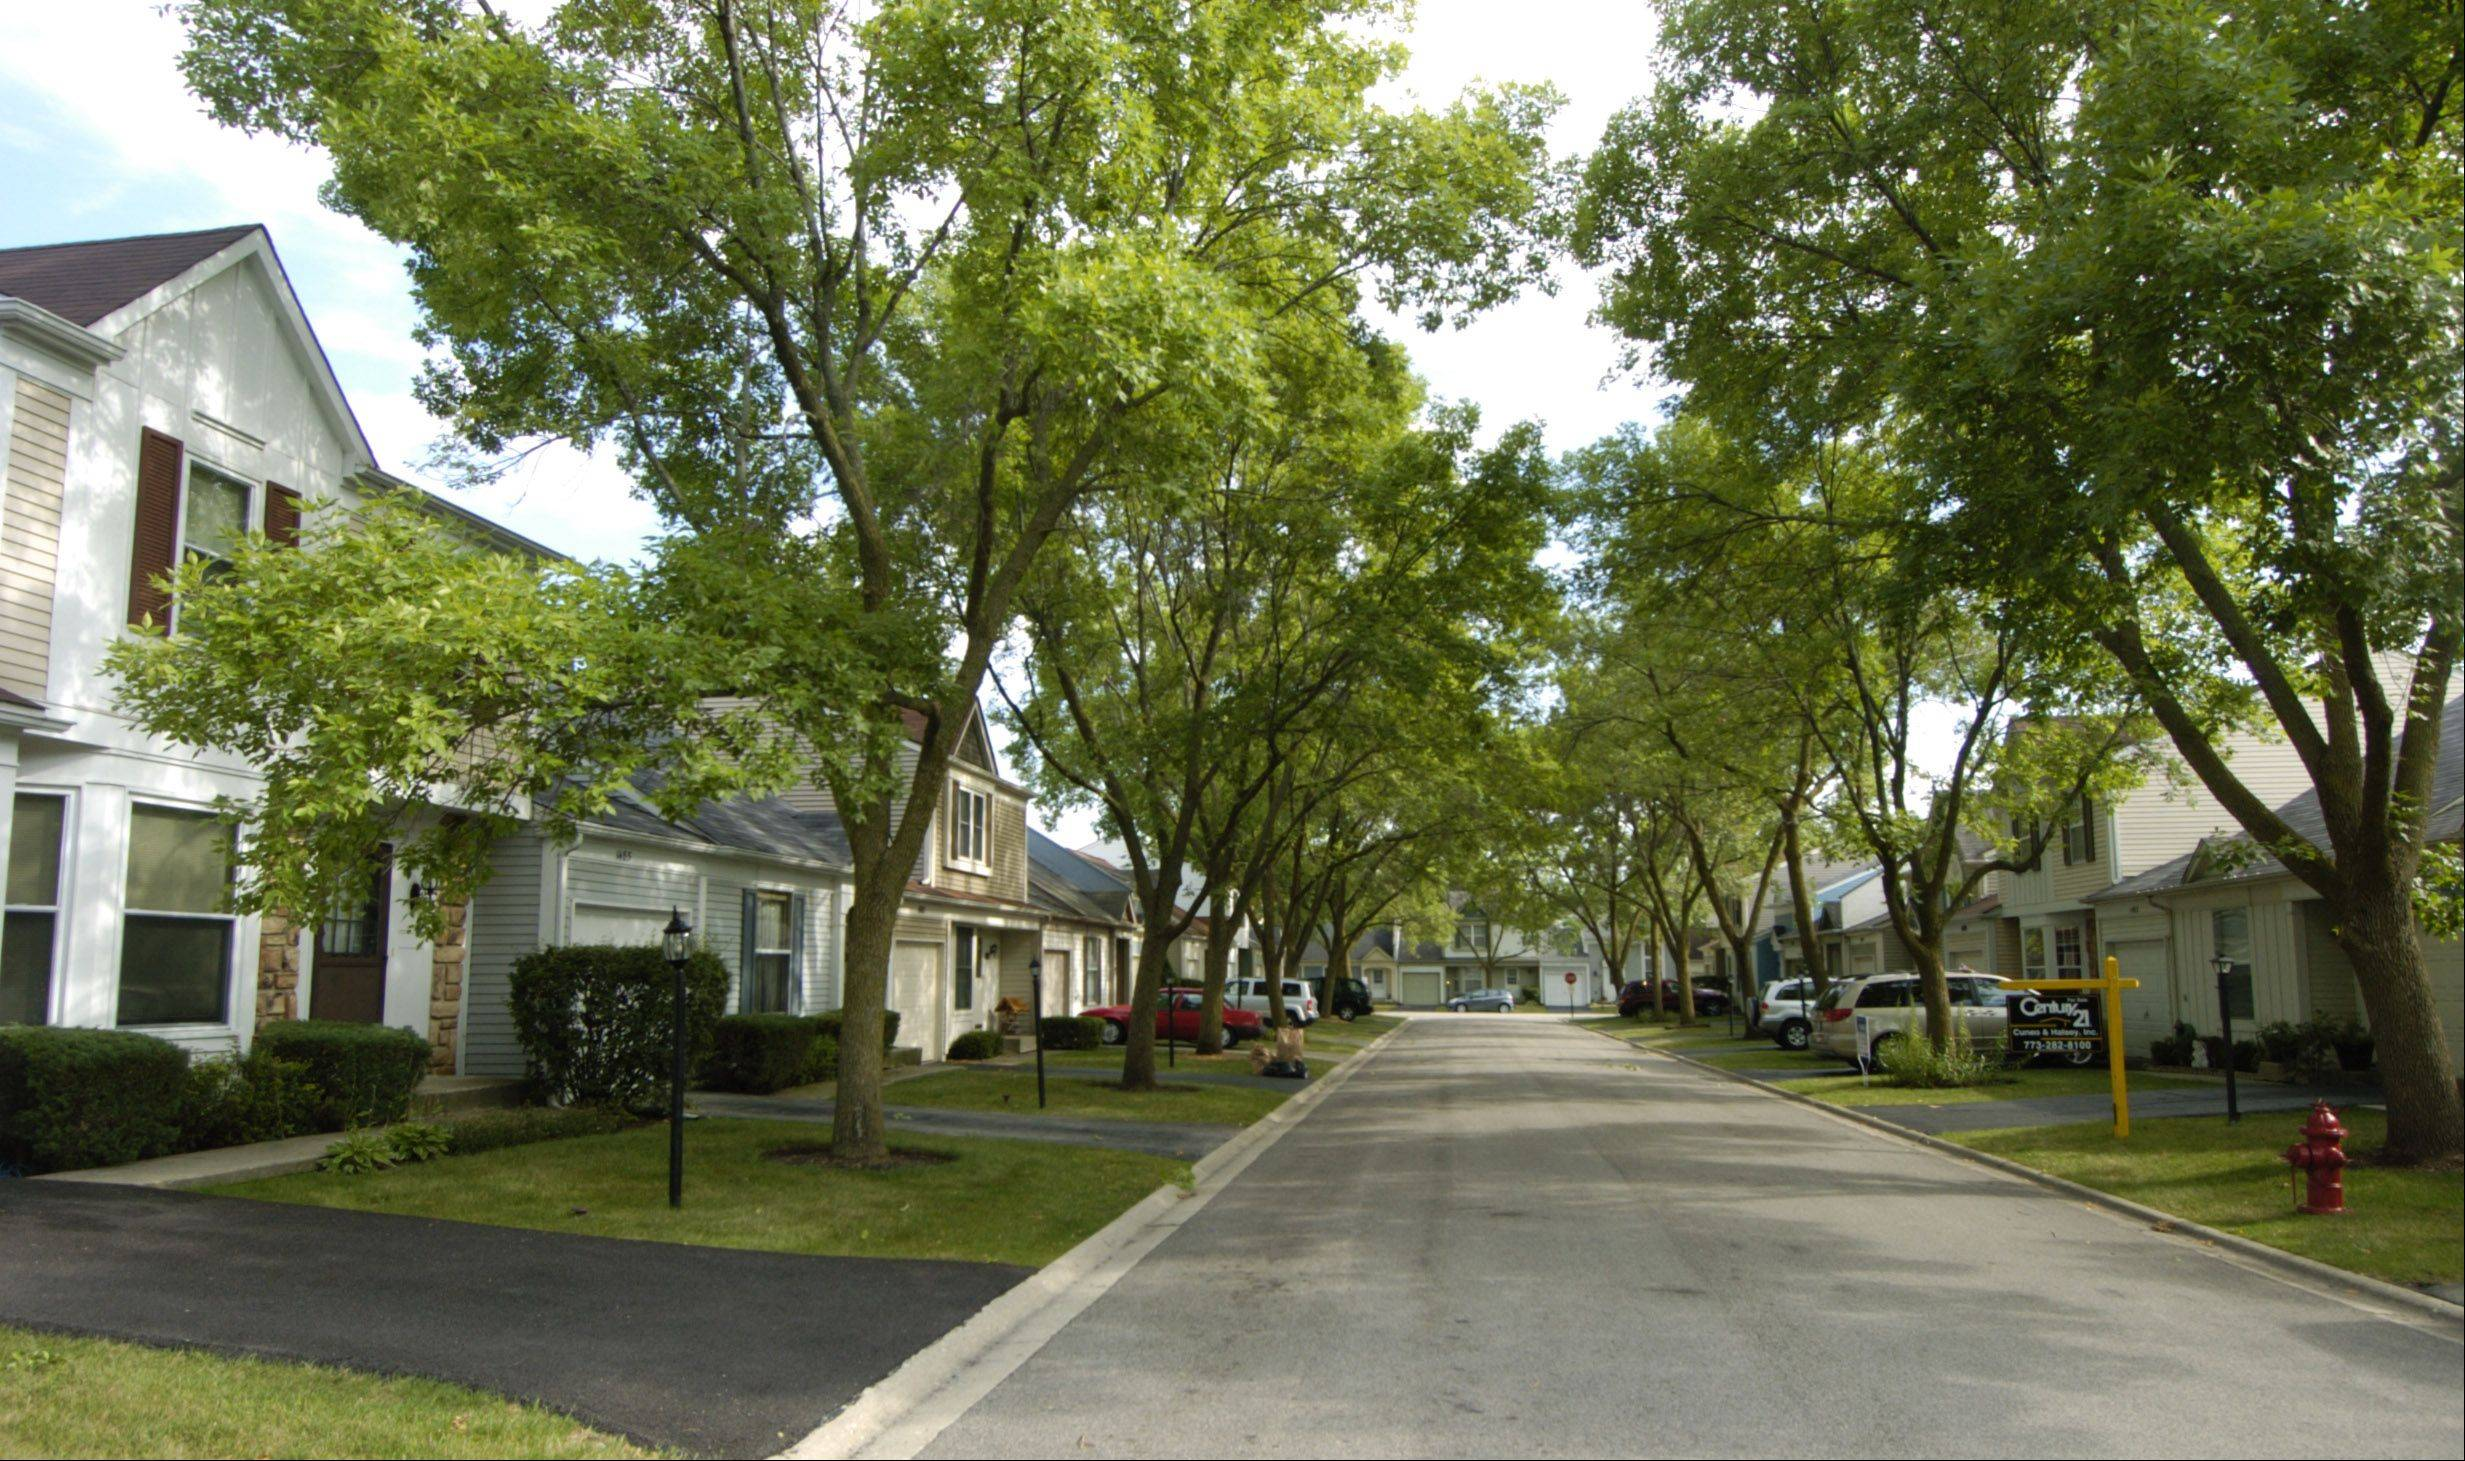 The quaint and cozy CherryBrook Village neighborhood is located off Dundee Road in Palatine.